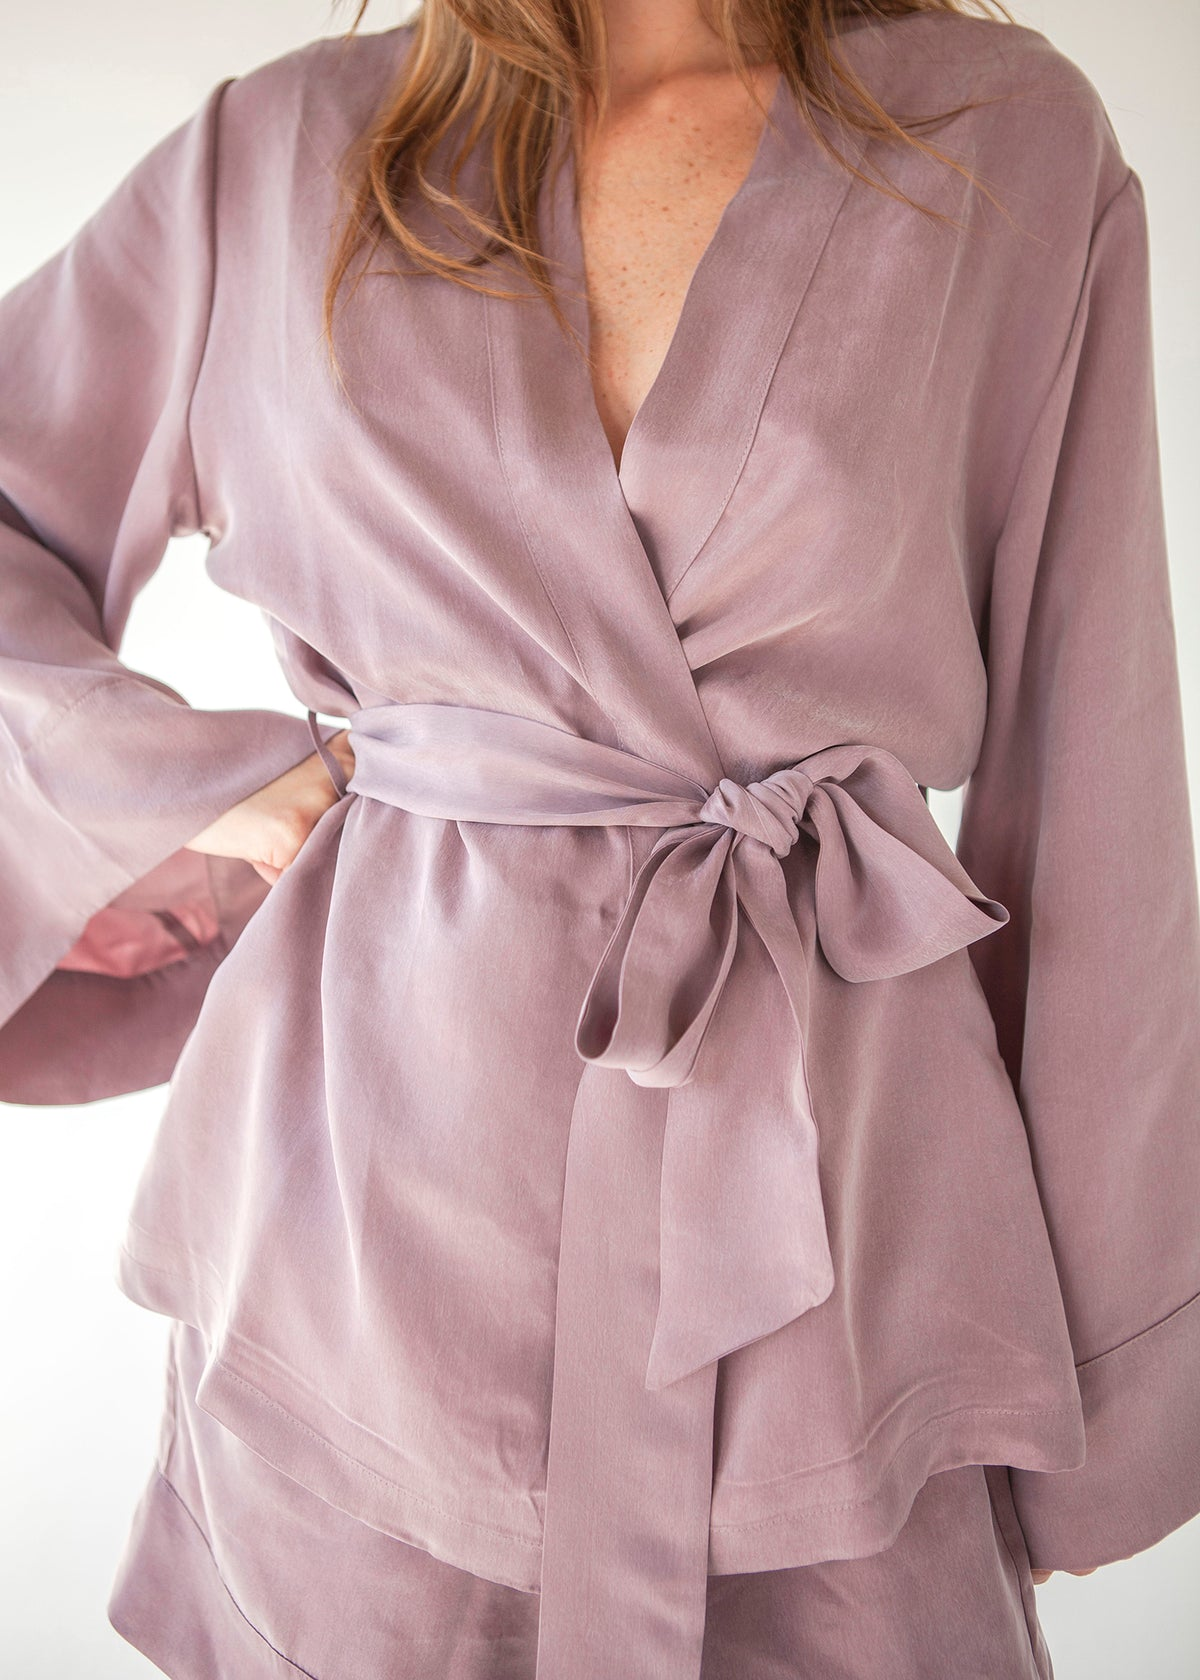 Blush Alyx Wrap Top